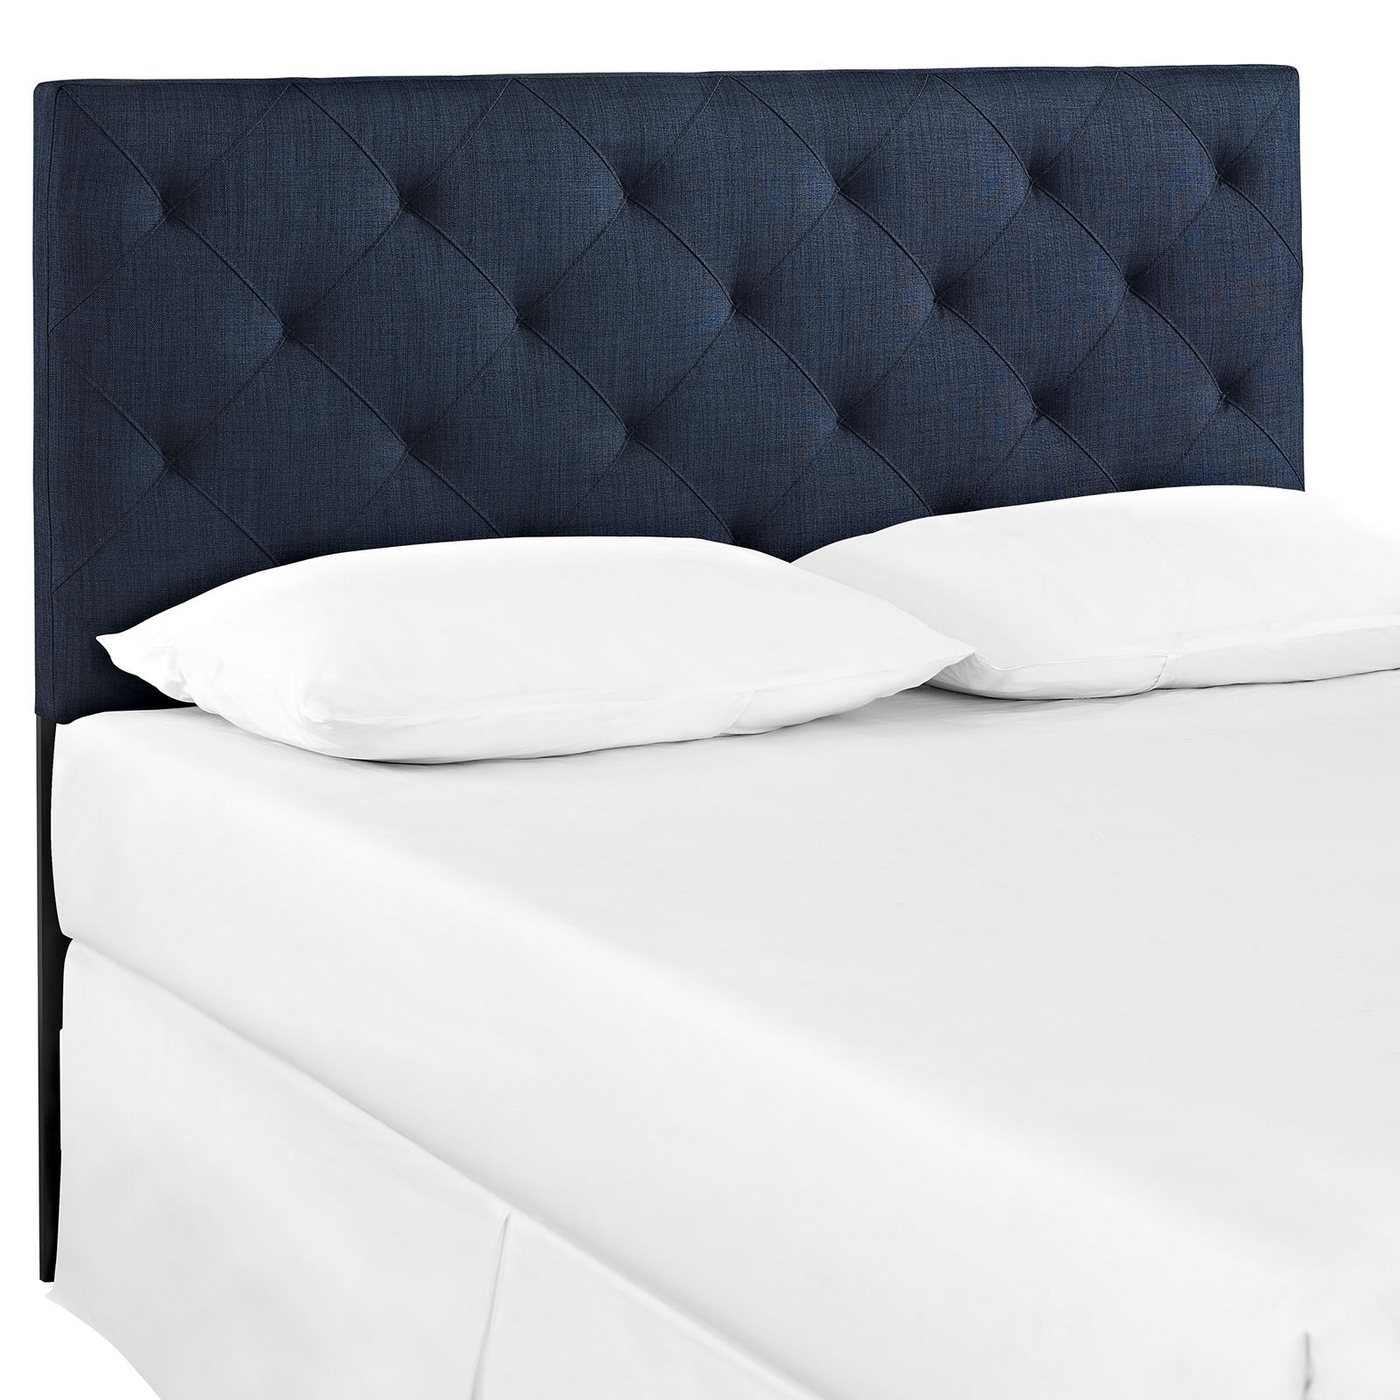 Theodore king tufted diamond pattern fabric headboard navy for Headboard patterns